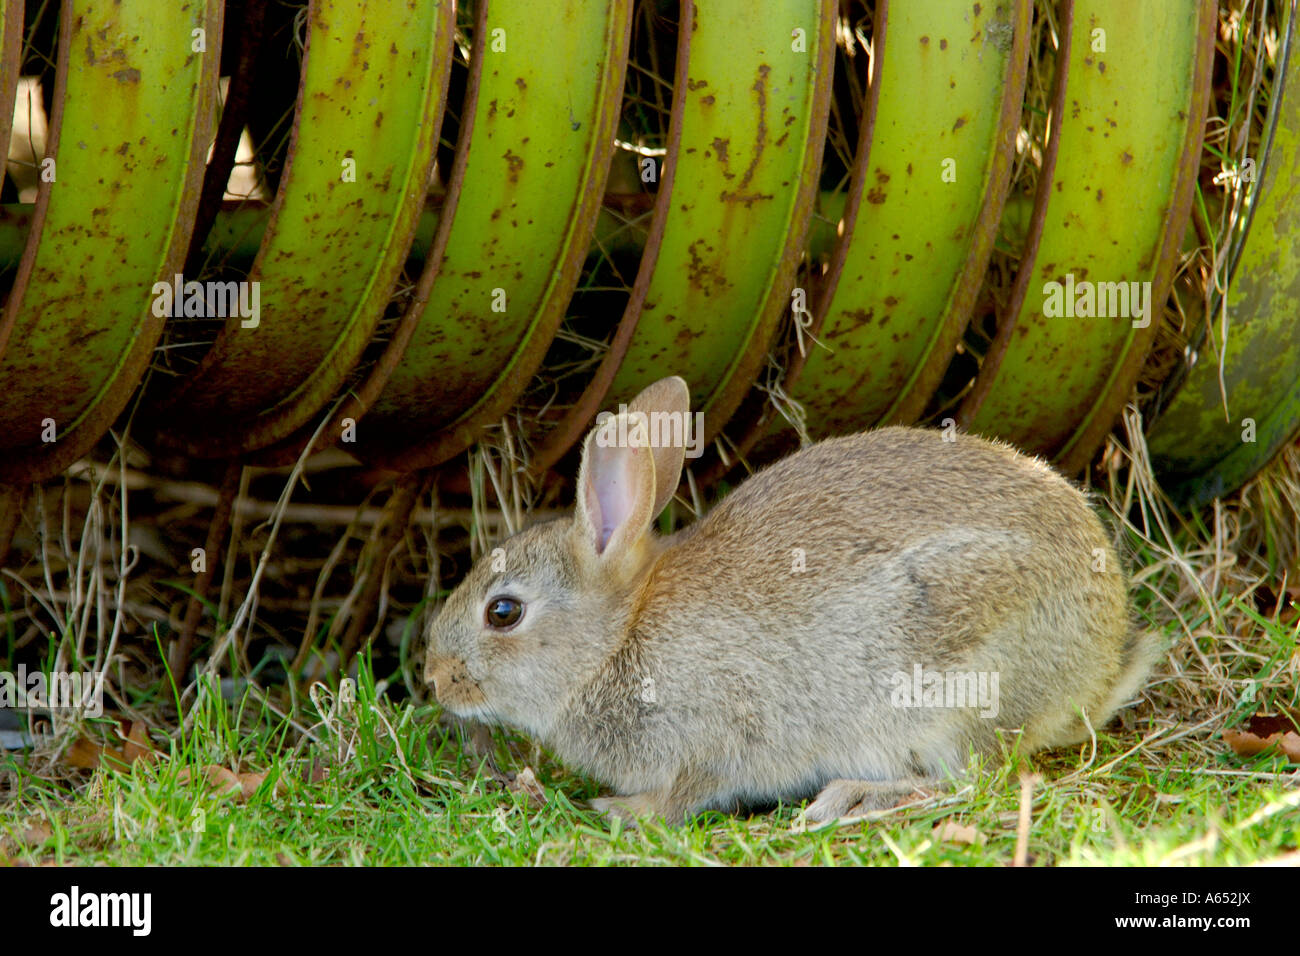 Wild grey rabbit sitting on grass in front of a large piece